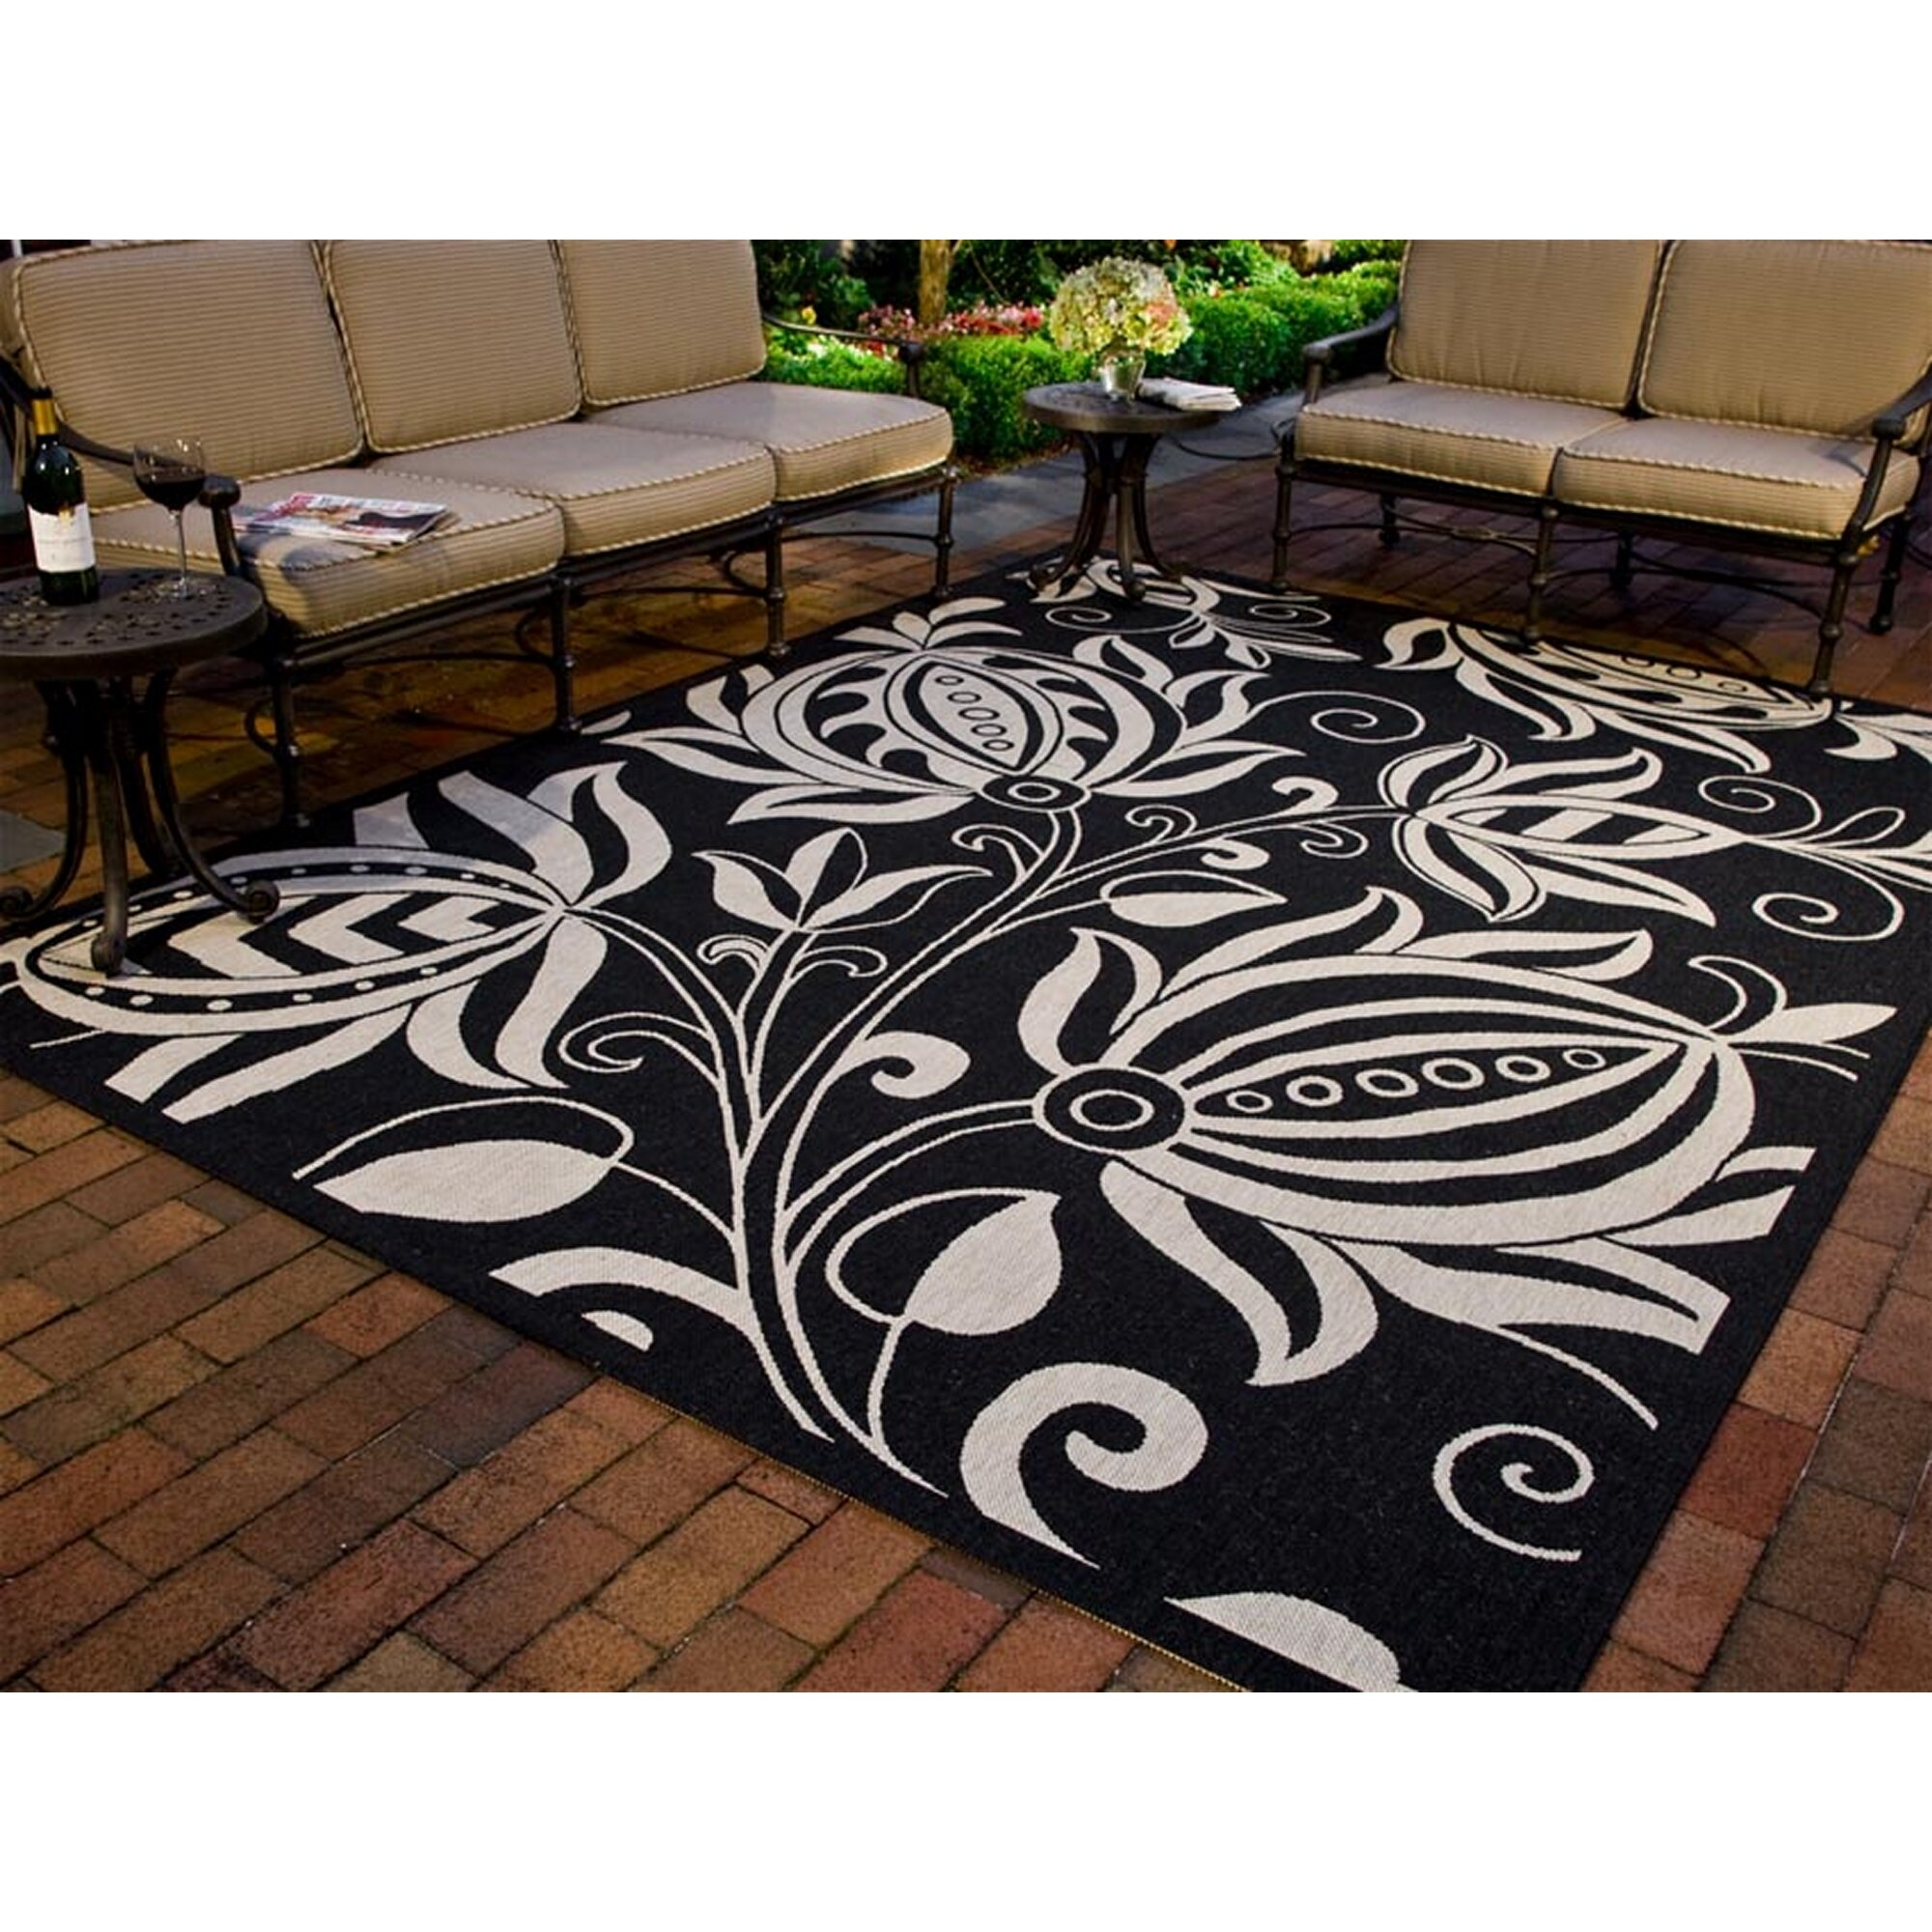 Safavieh Courtyard Black & Tan Indoor Outdoor Area Rug